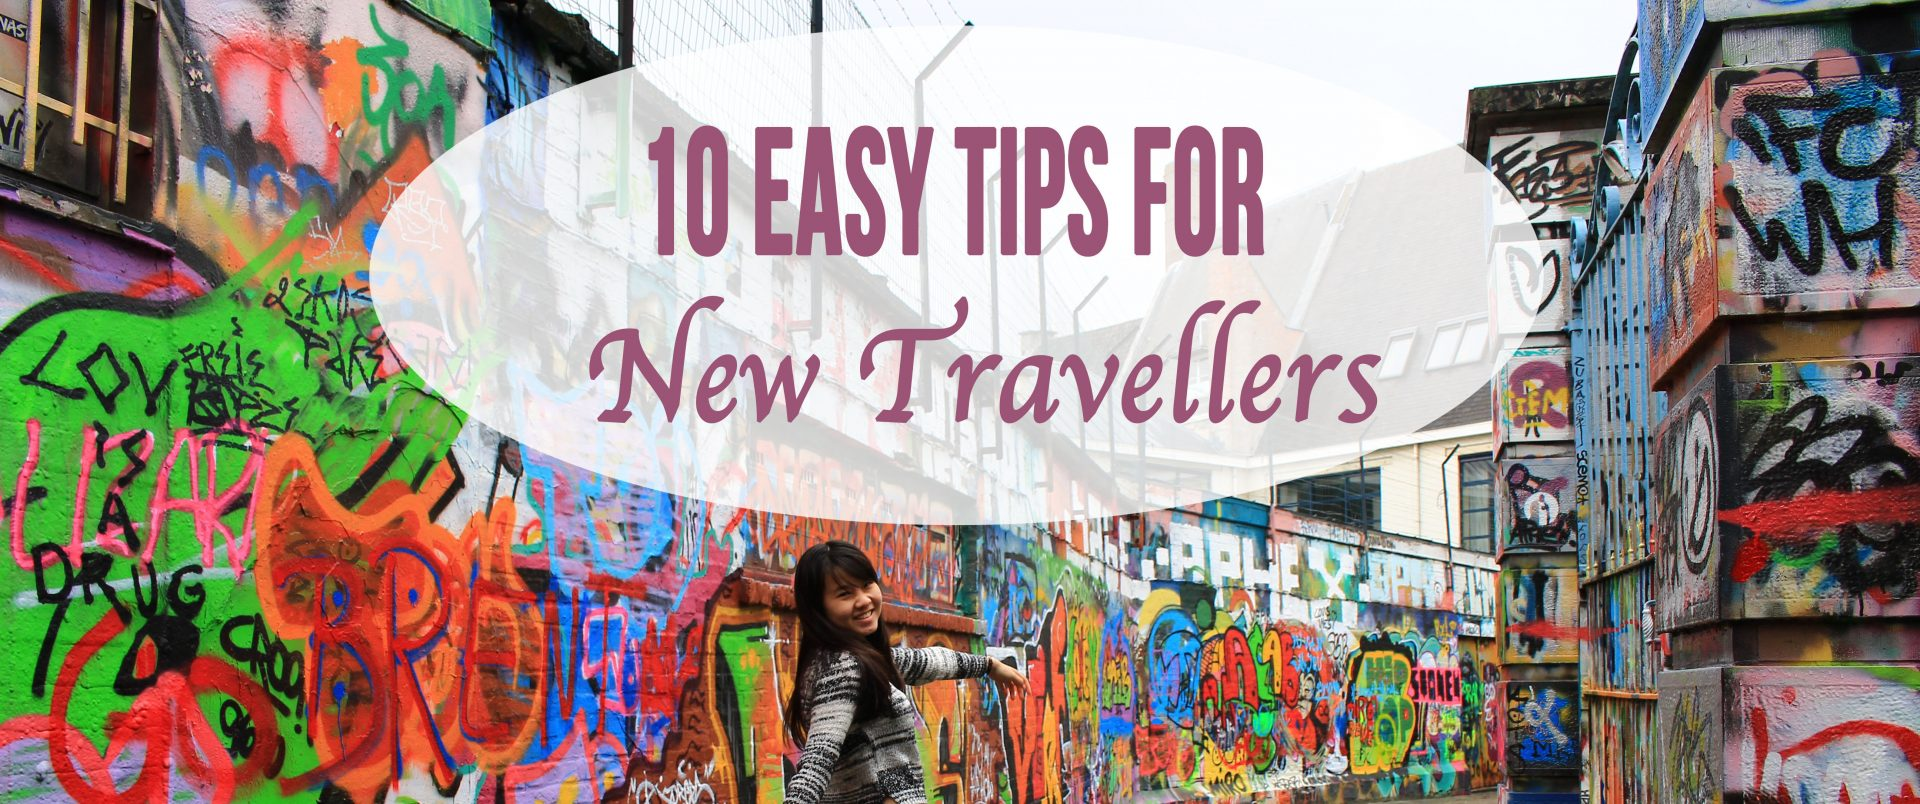 Prevent Pickpockets and Travel Worry-Free with These 10 Easy Tips